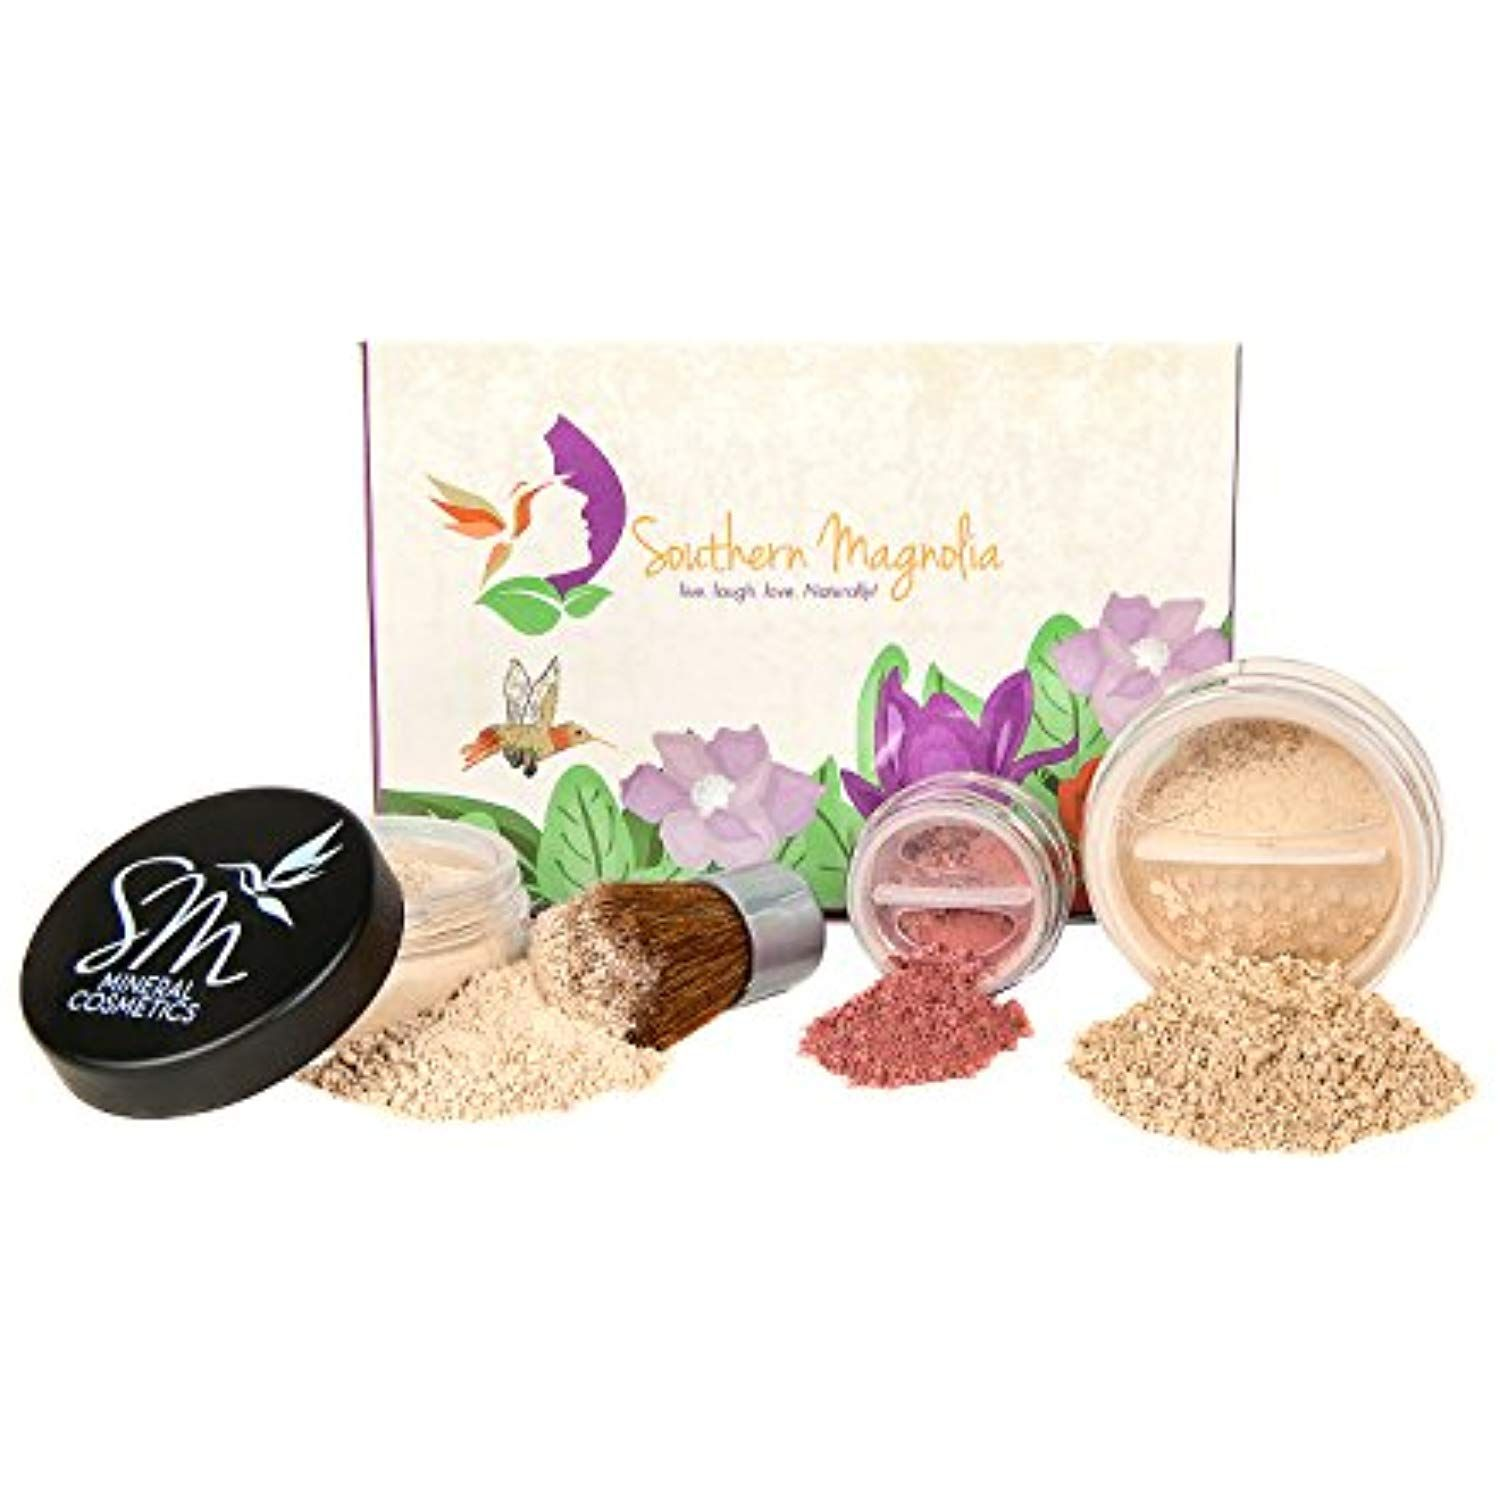 Southern Magnolia Minerals Mineral Makeup Essential Beauty